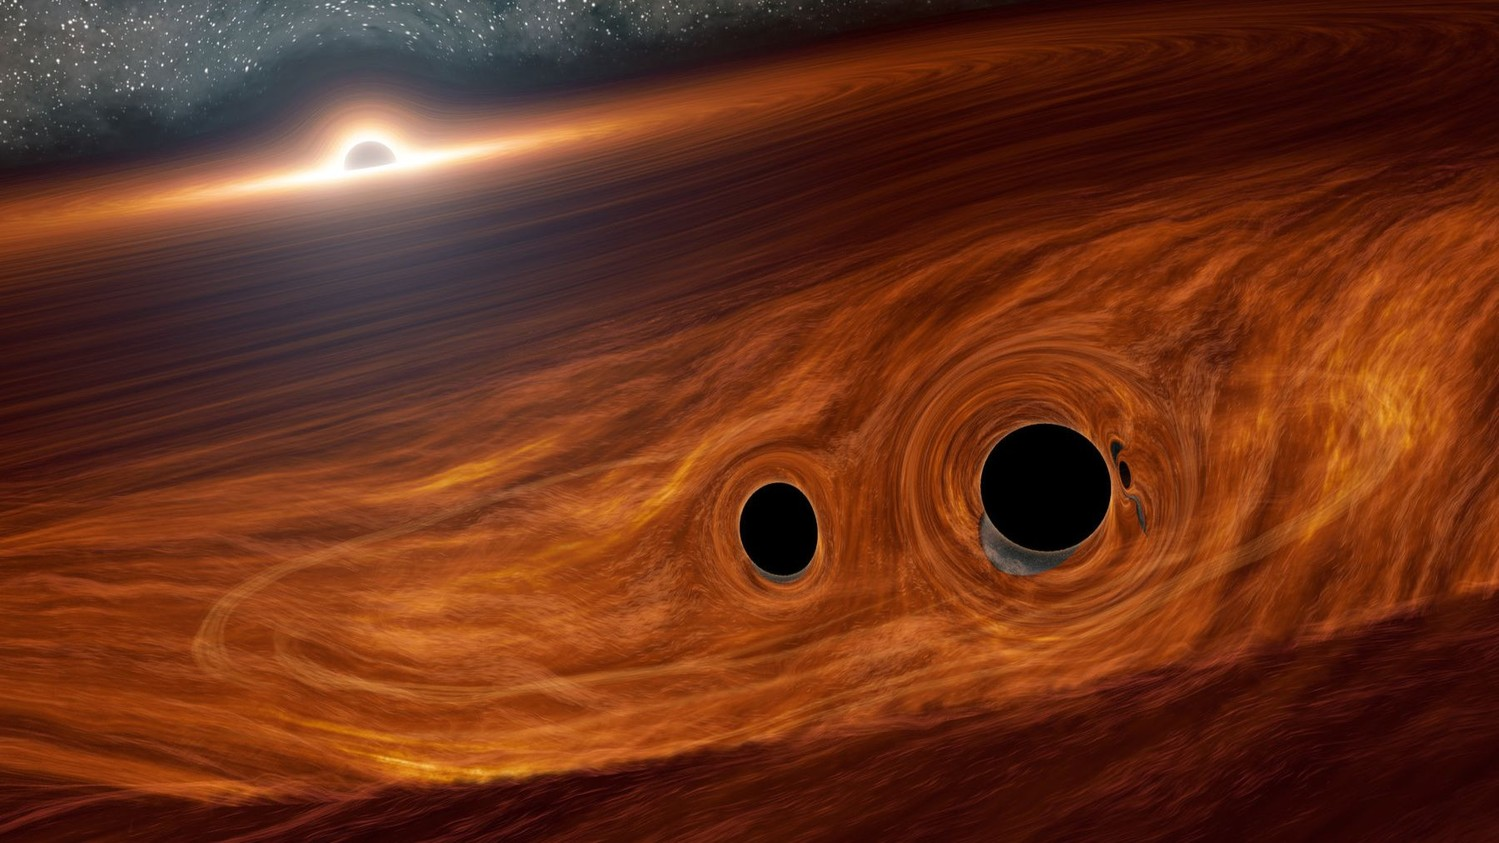 Young black holes violate the laws of physics scientists at a loss